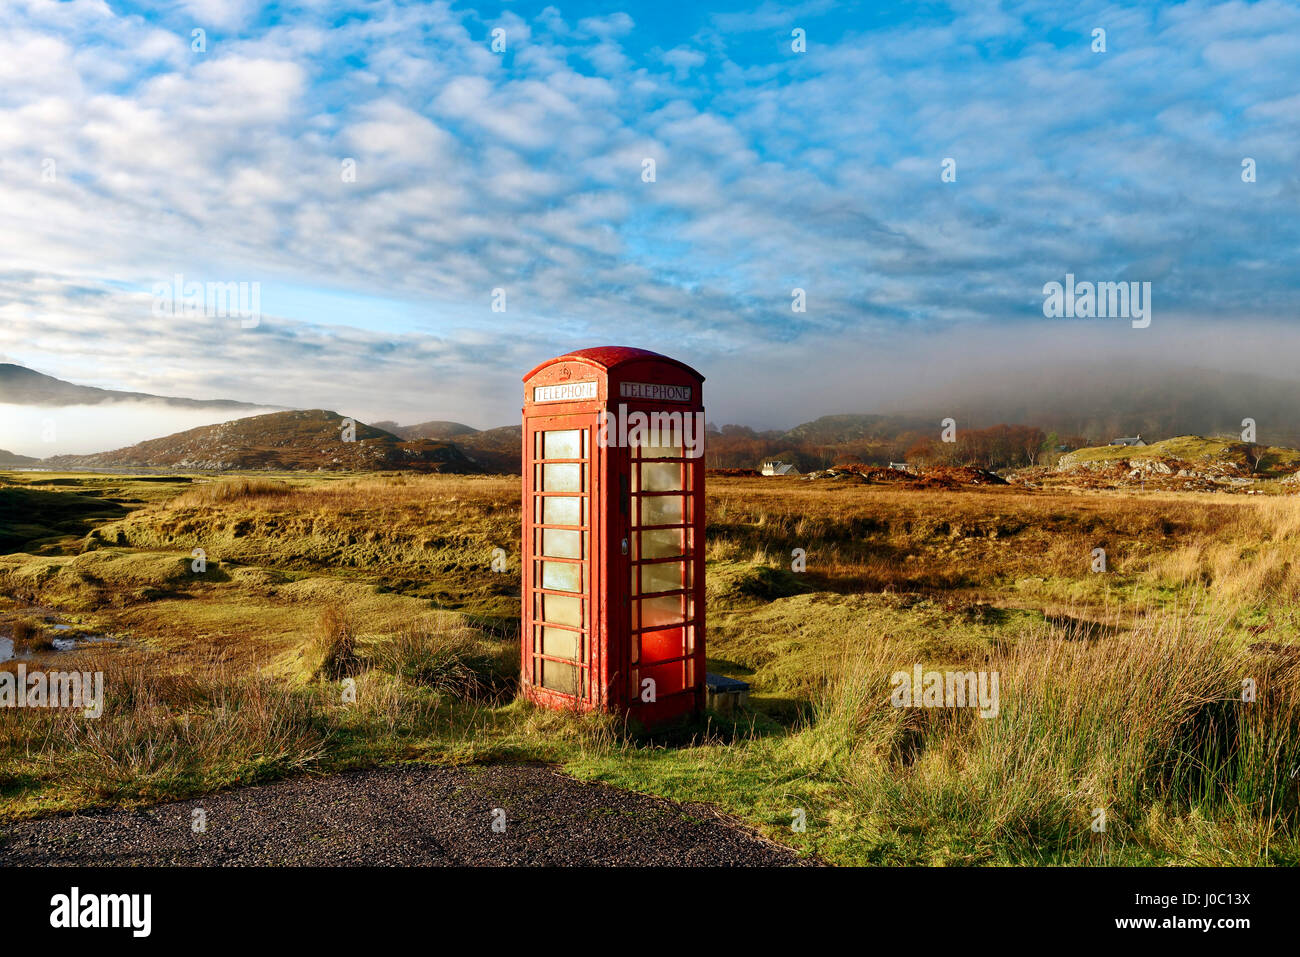 Autumn view of a red telephone box at the side of a quiet road, Ardnamurchan moors of the Scottish Highlands, Scotland, - Stock Image